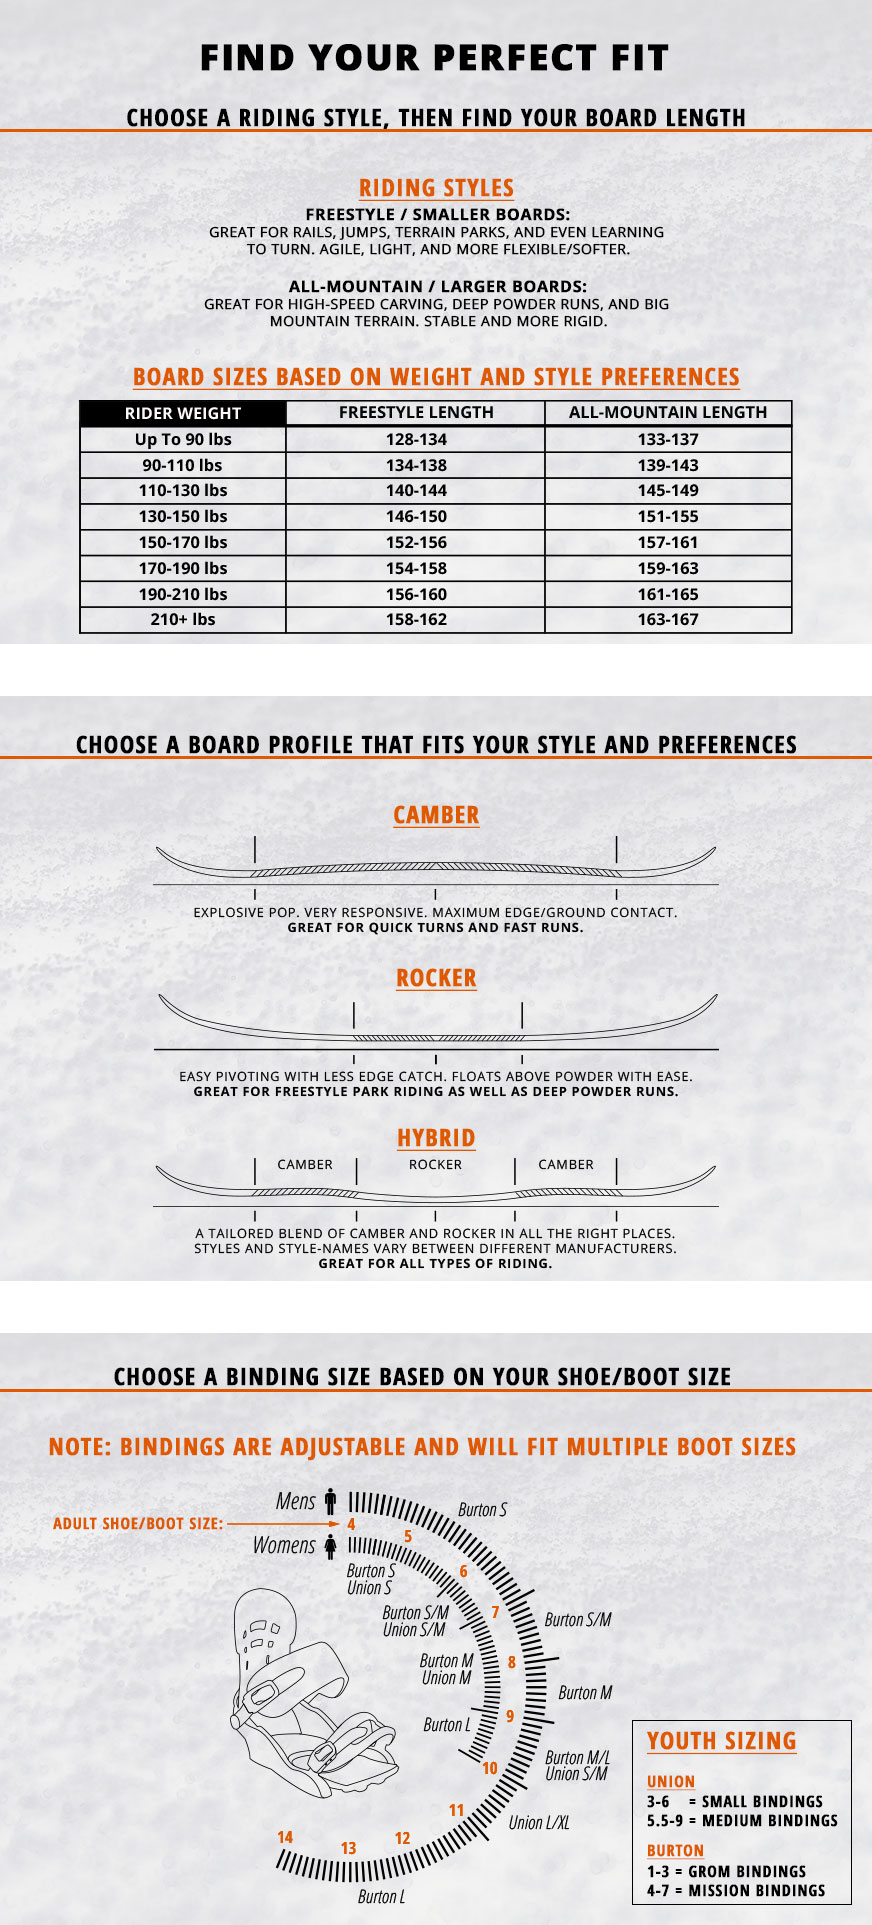 Nike jacket size chart - Know Your Size Chart